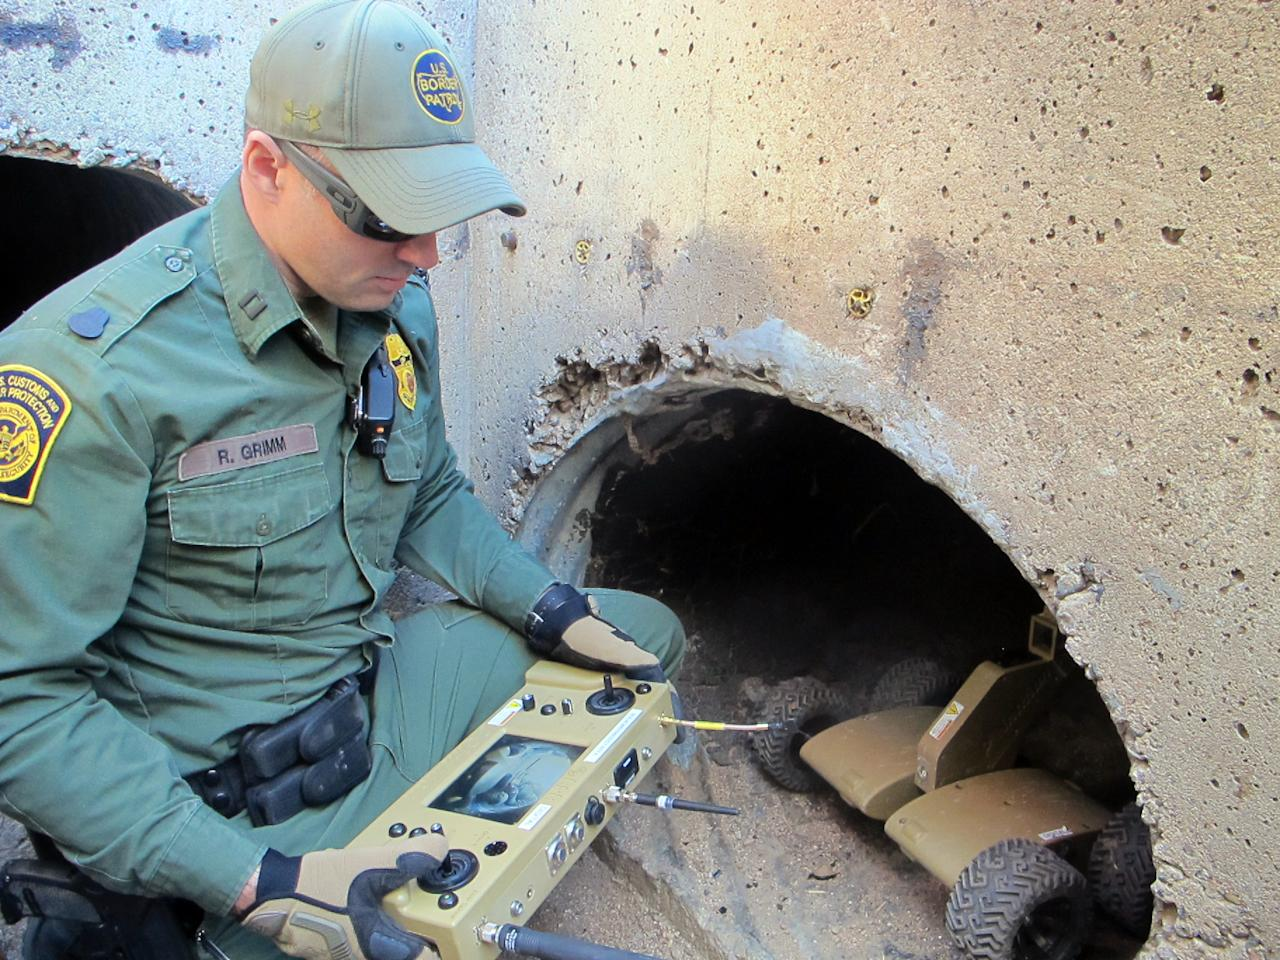 U.S. Border Patrol Agent Ryan Grimm demonstrates how a robot is used to navigate a drainage canal along the border fence during a briefing in Nogales, Ariz., Tuesday, Jan. 14, 2014. With more than 75 underground drug smuggling tunnels found along the border since 2008, mostly in California and Arizona, the Border Patrol is utilizing the wireless, camera-equipped robot, to search underground while keeping agents safer. (AP Photo/Brian Skoloff)